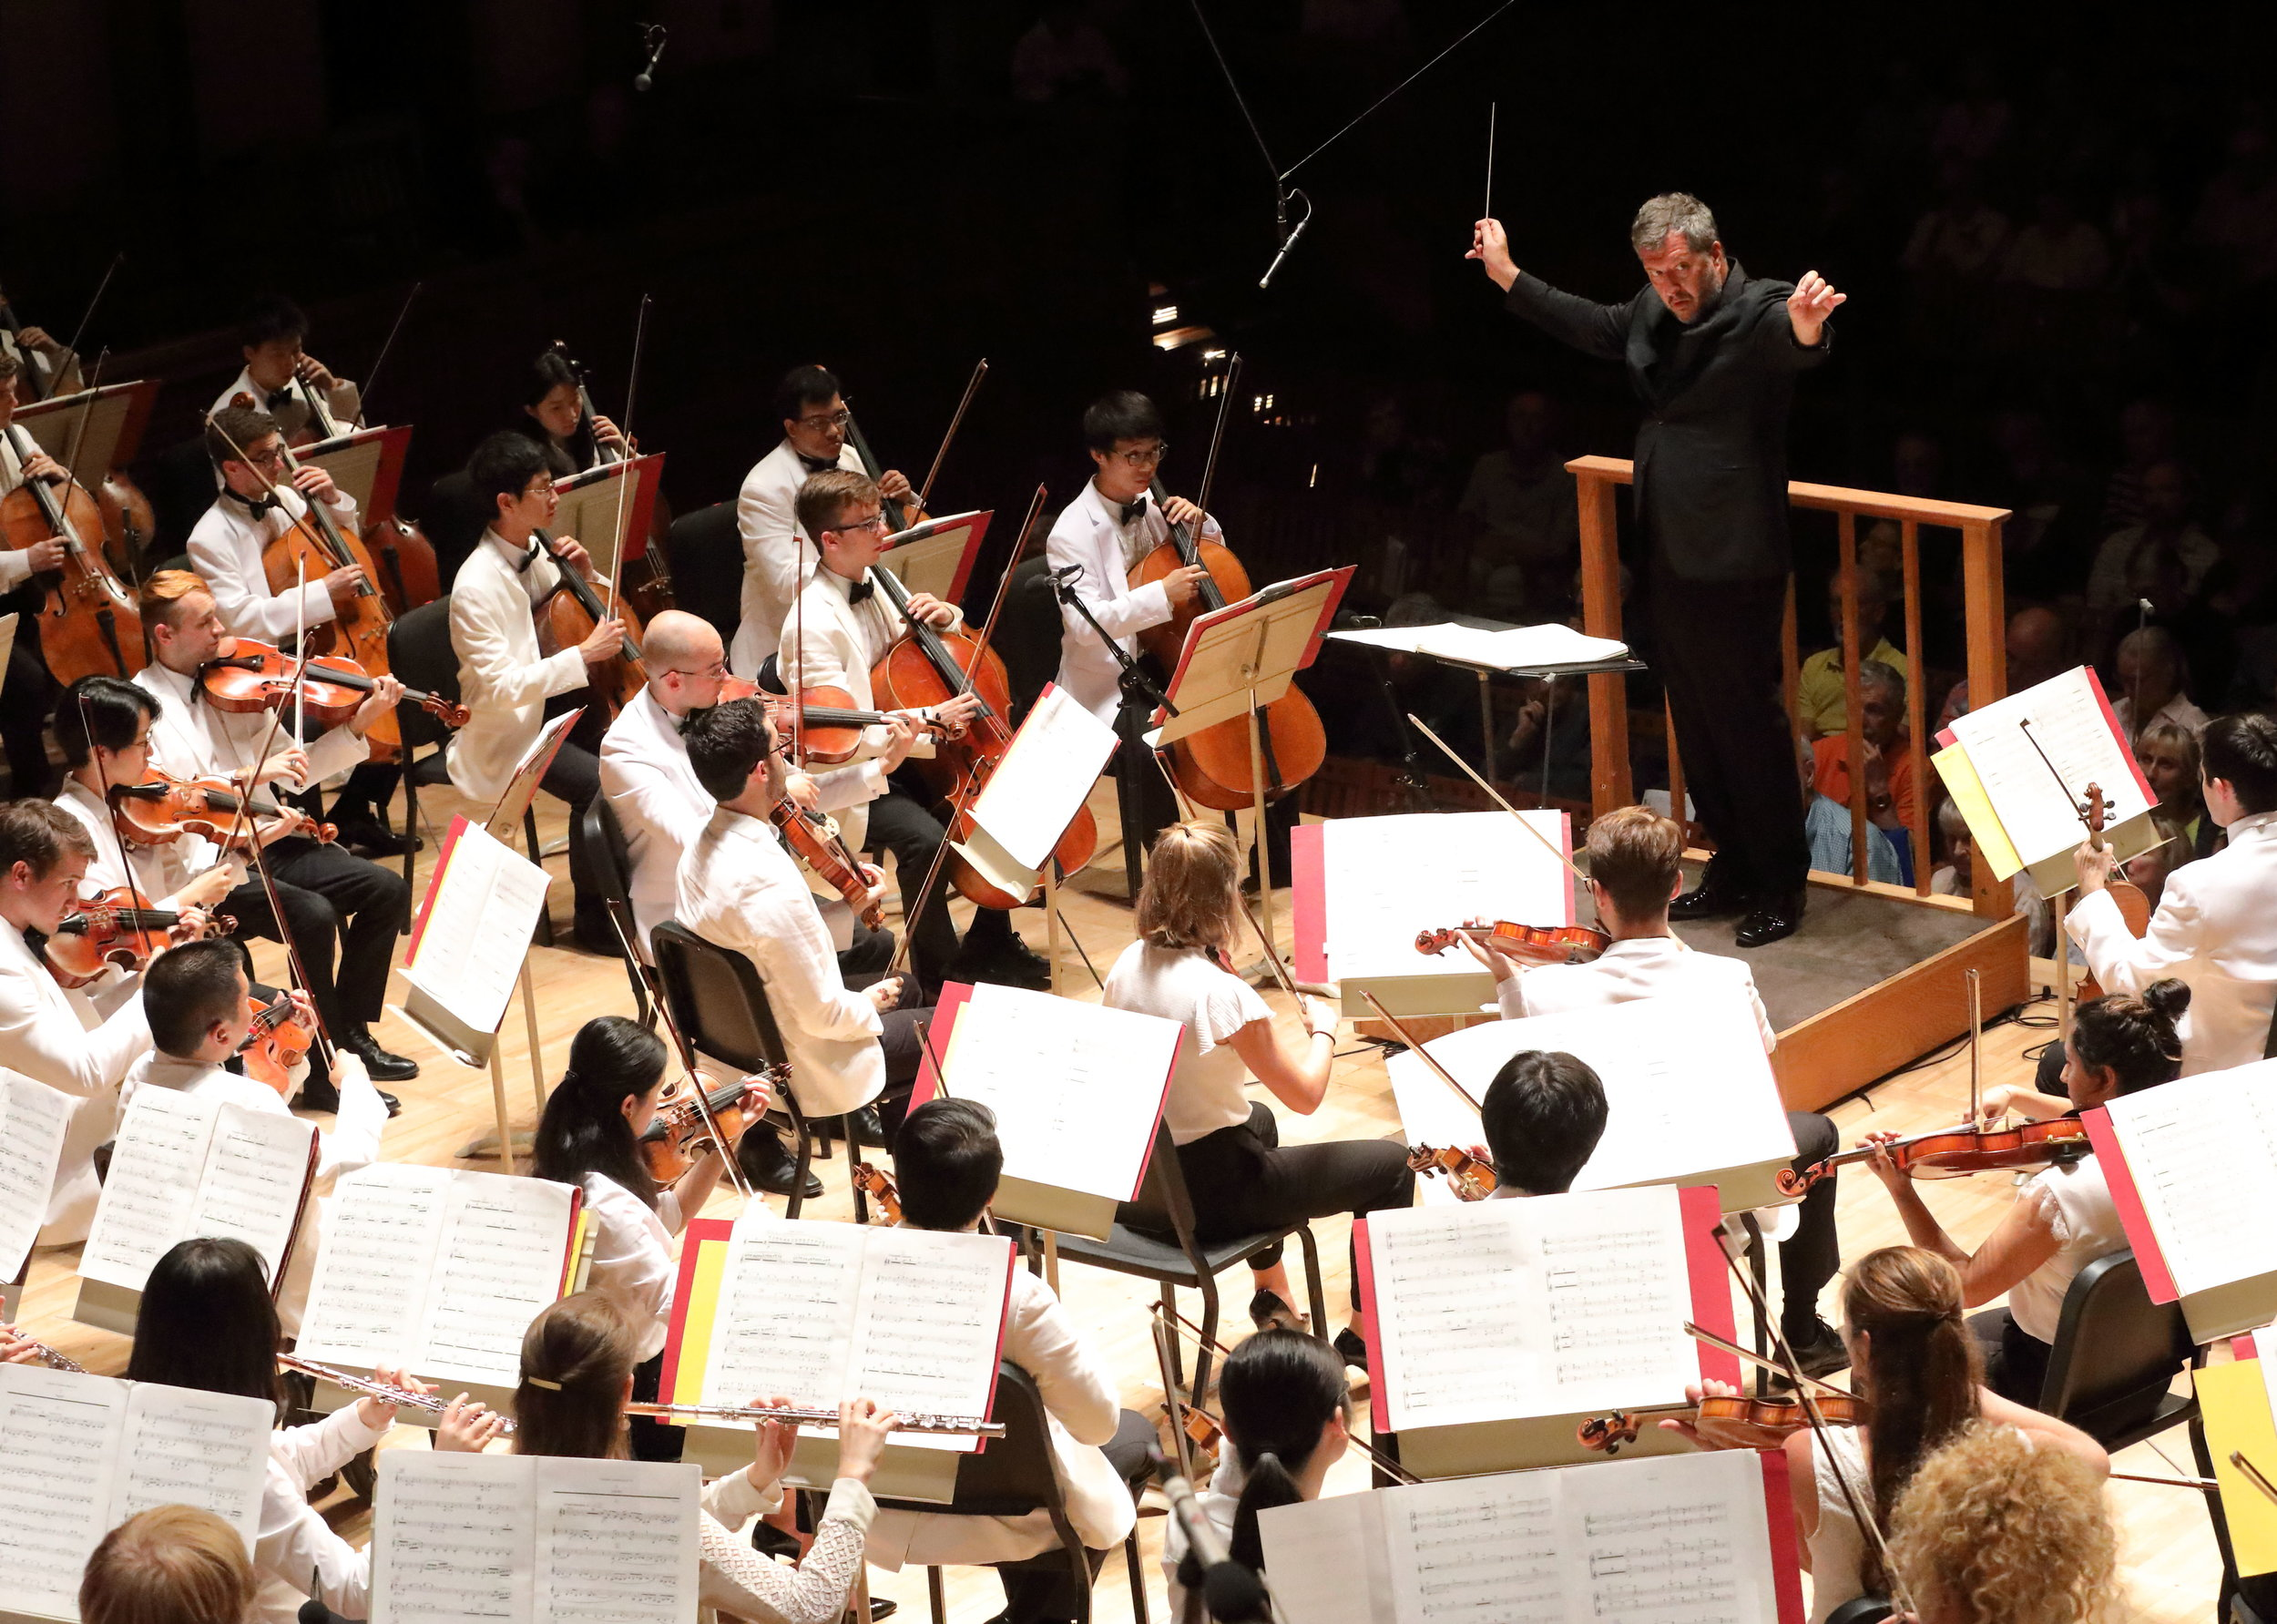 Thomas Adès leads the Tanglewood Music Center Orchestra in Poul Ruders' Fifth Symphony, Aug. 12 at Ozawa Hall. Hilary Scott photograph